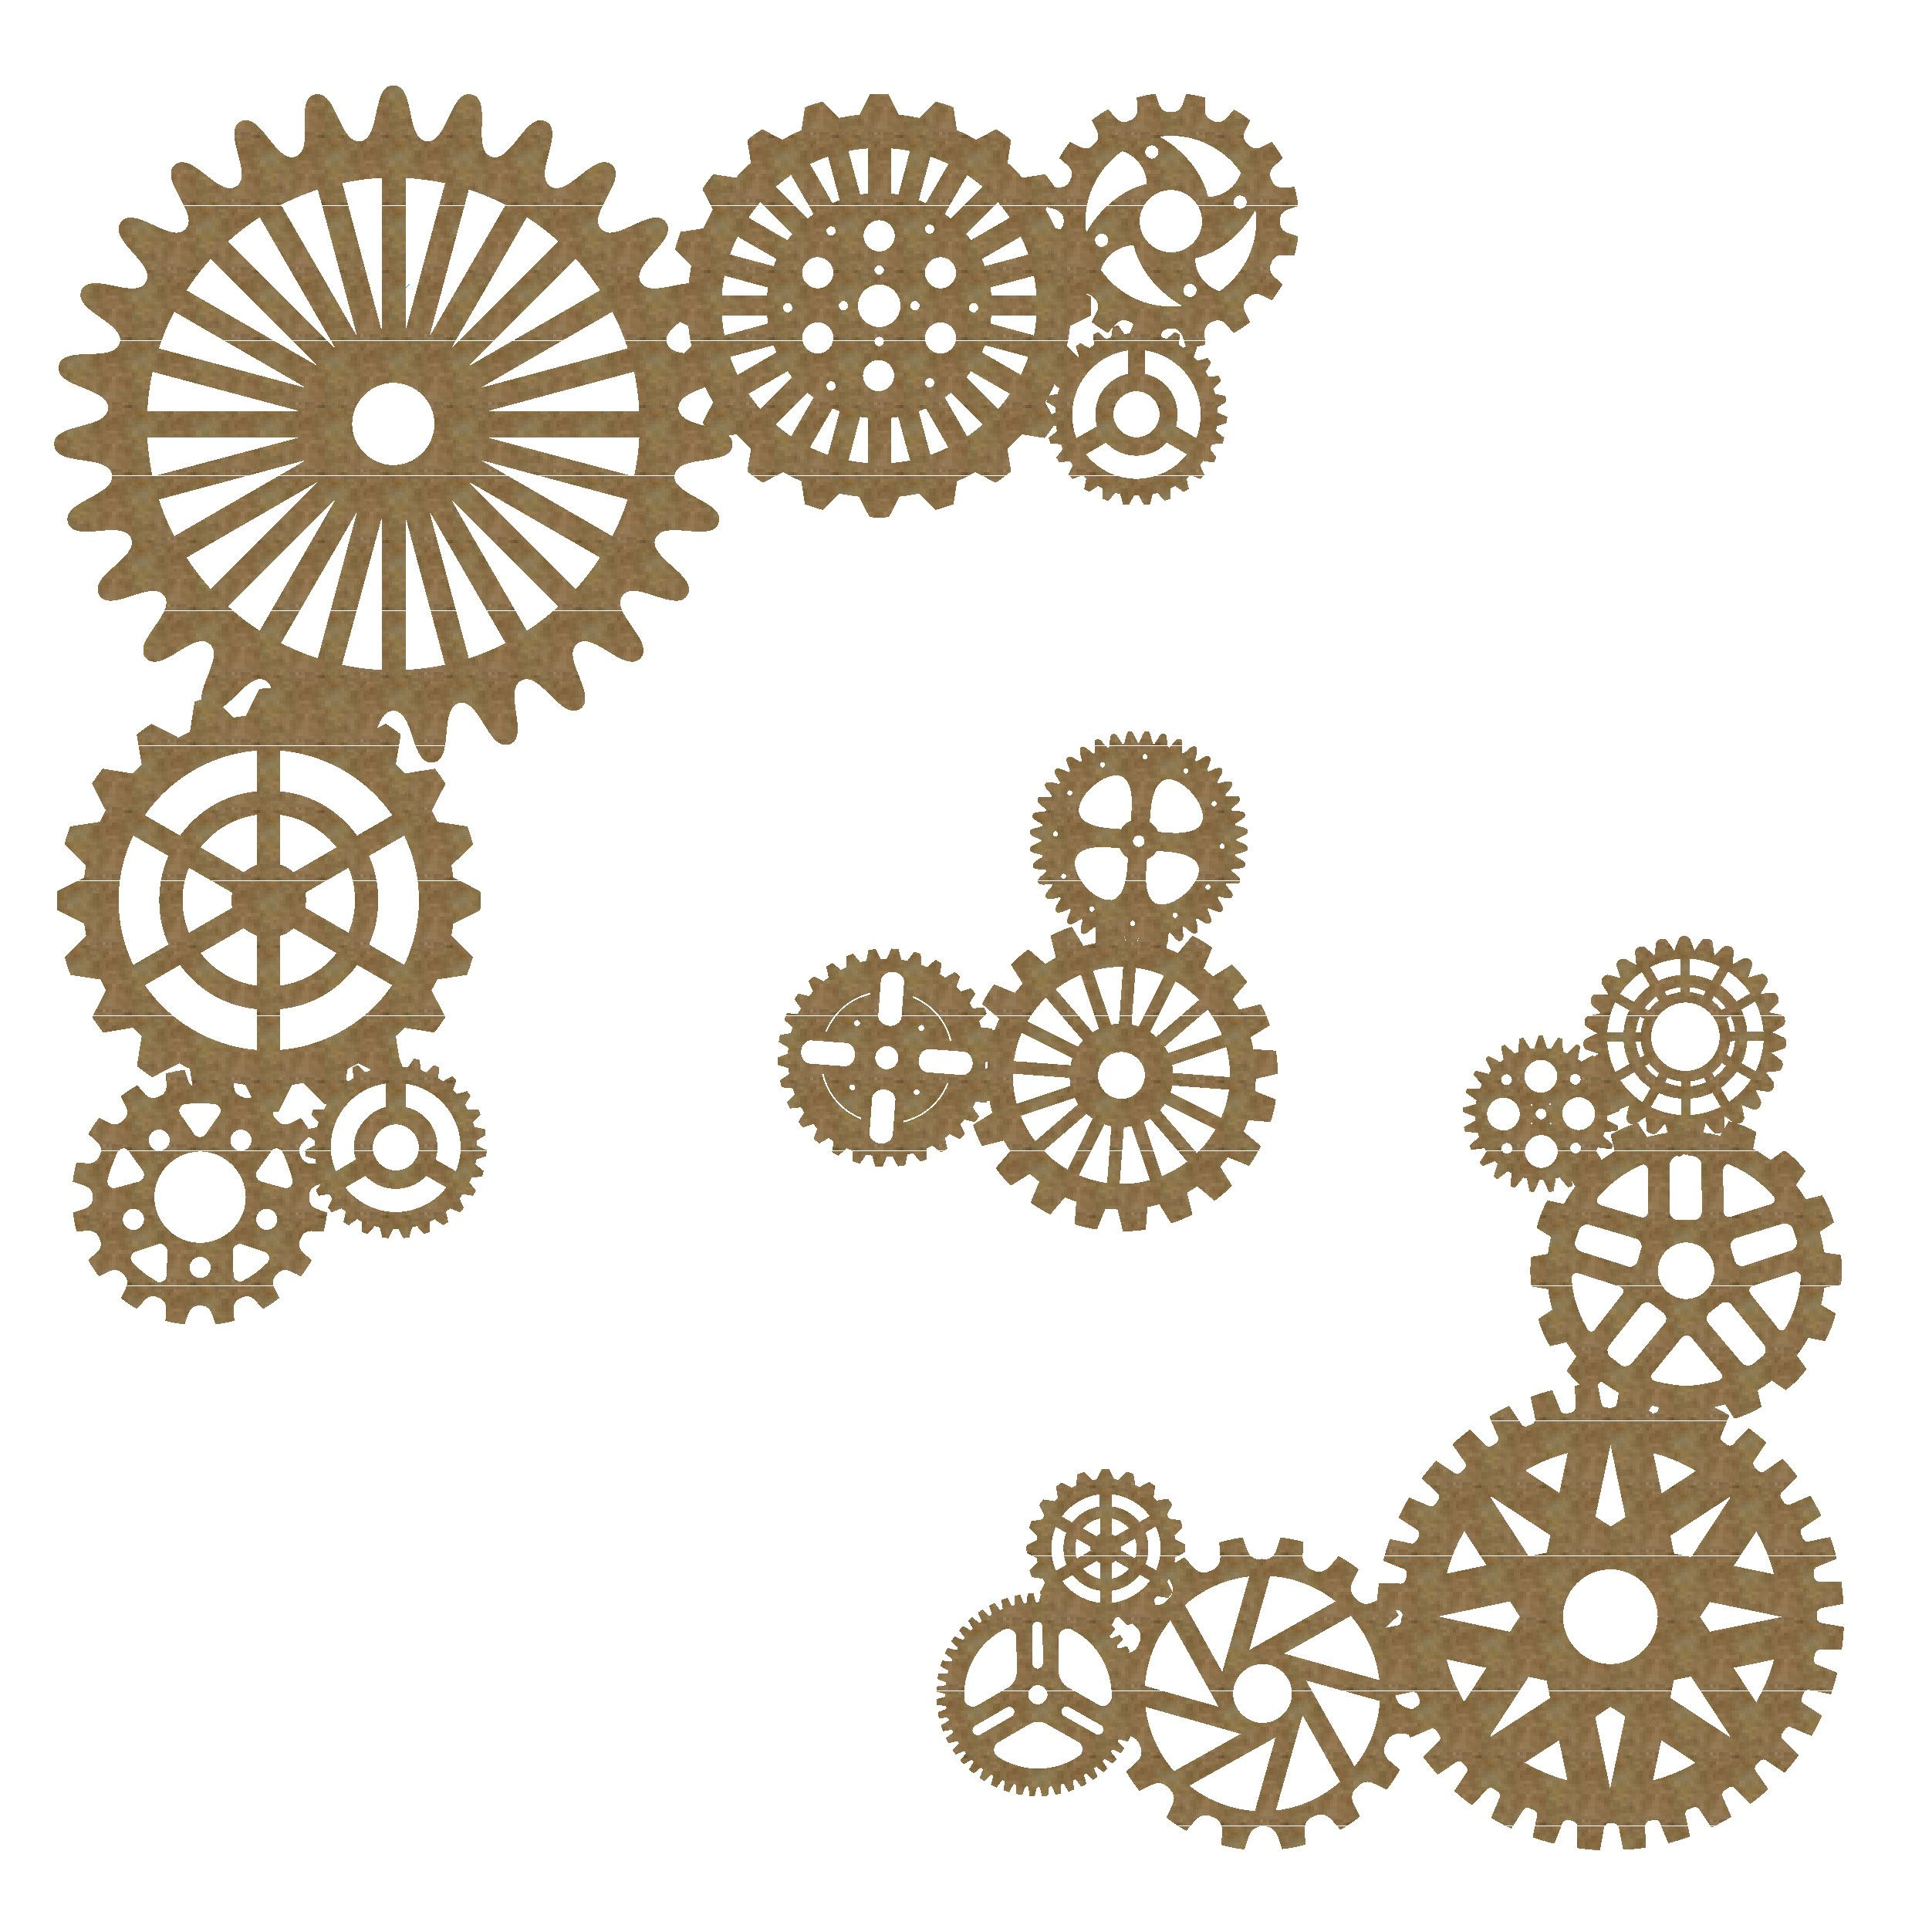 clipart free download Gear google search art. Gears border clipart